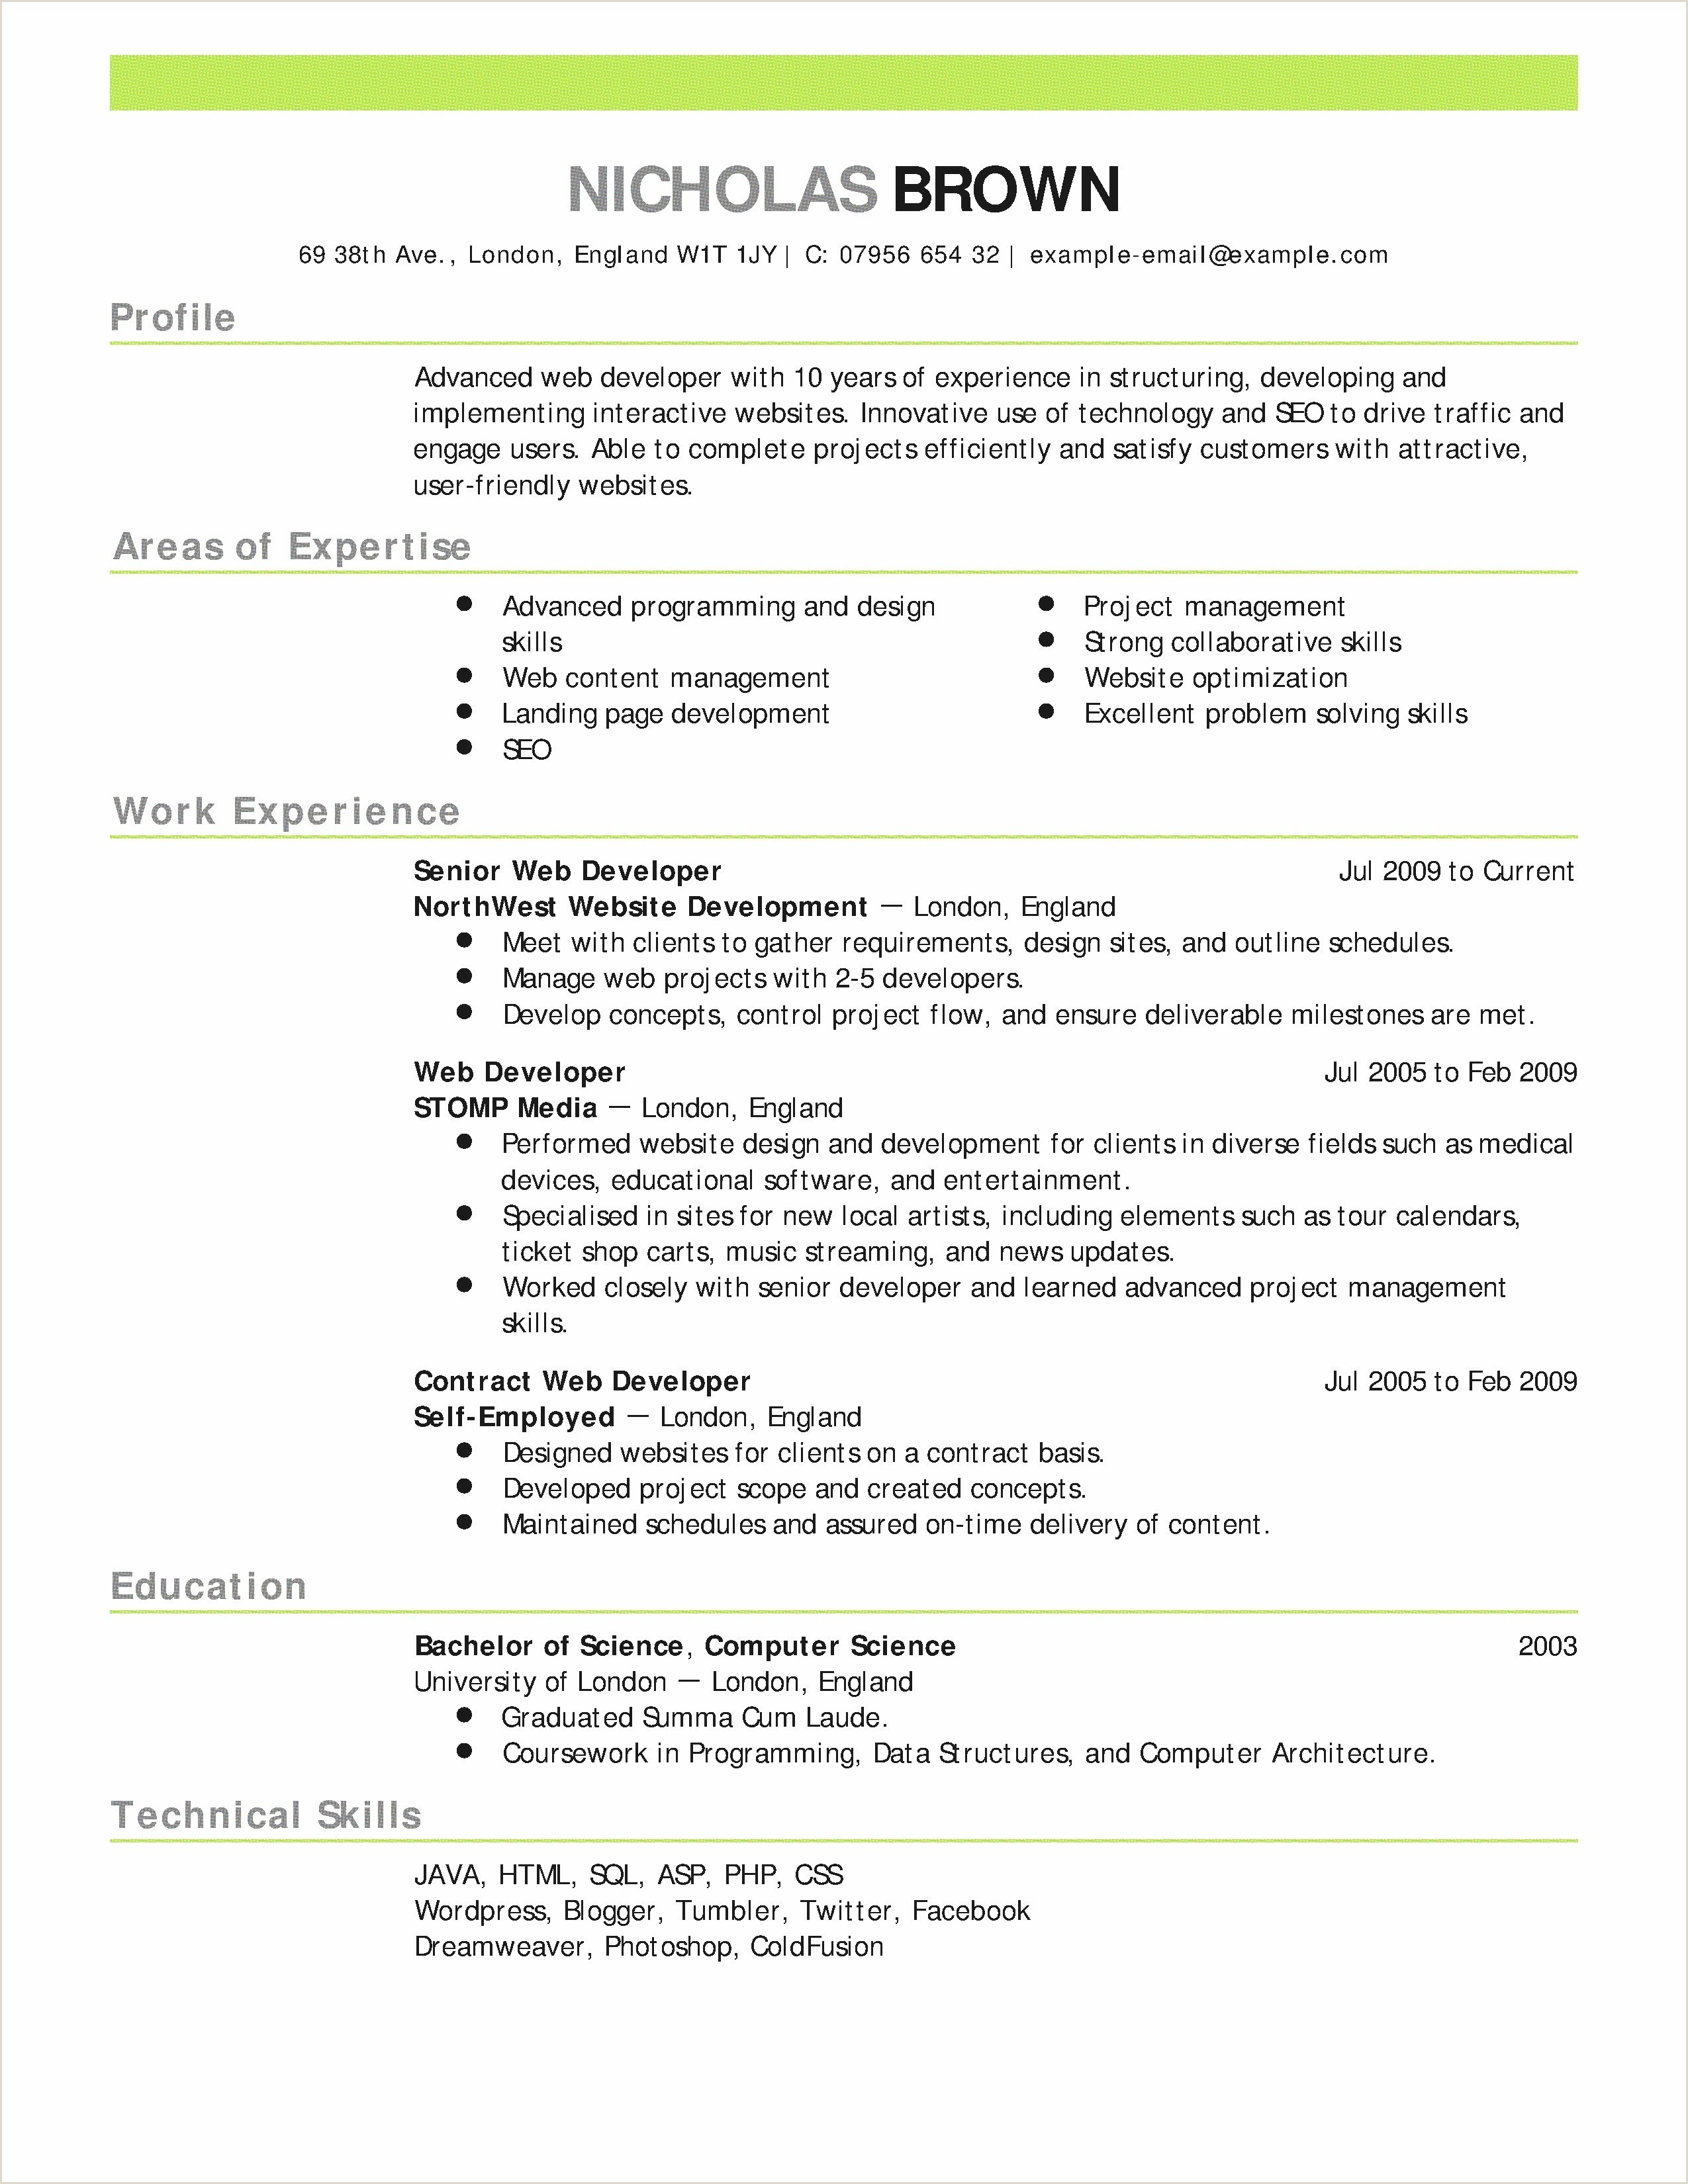 Standard Cv format for Job New Example Curriculum Vitae